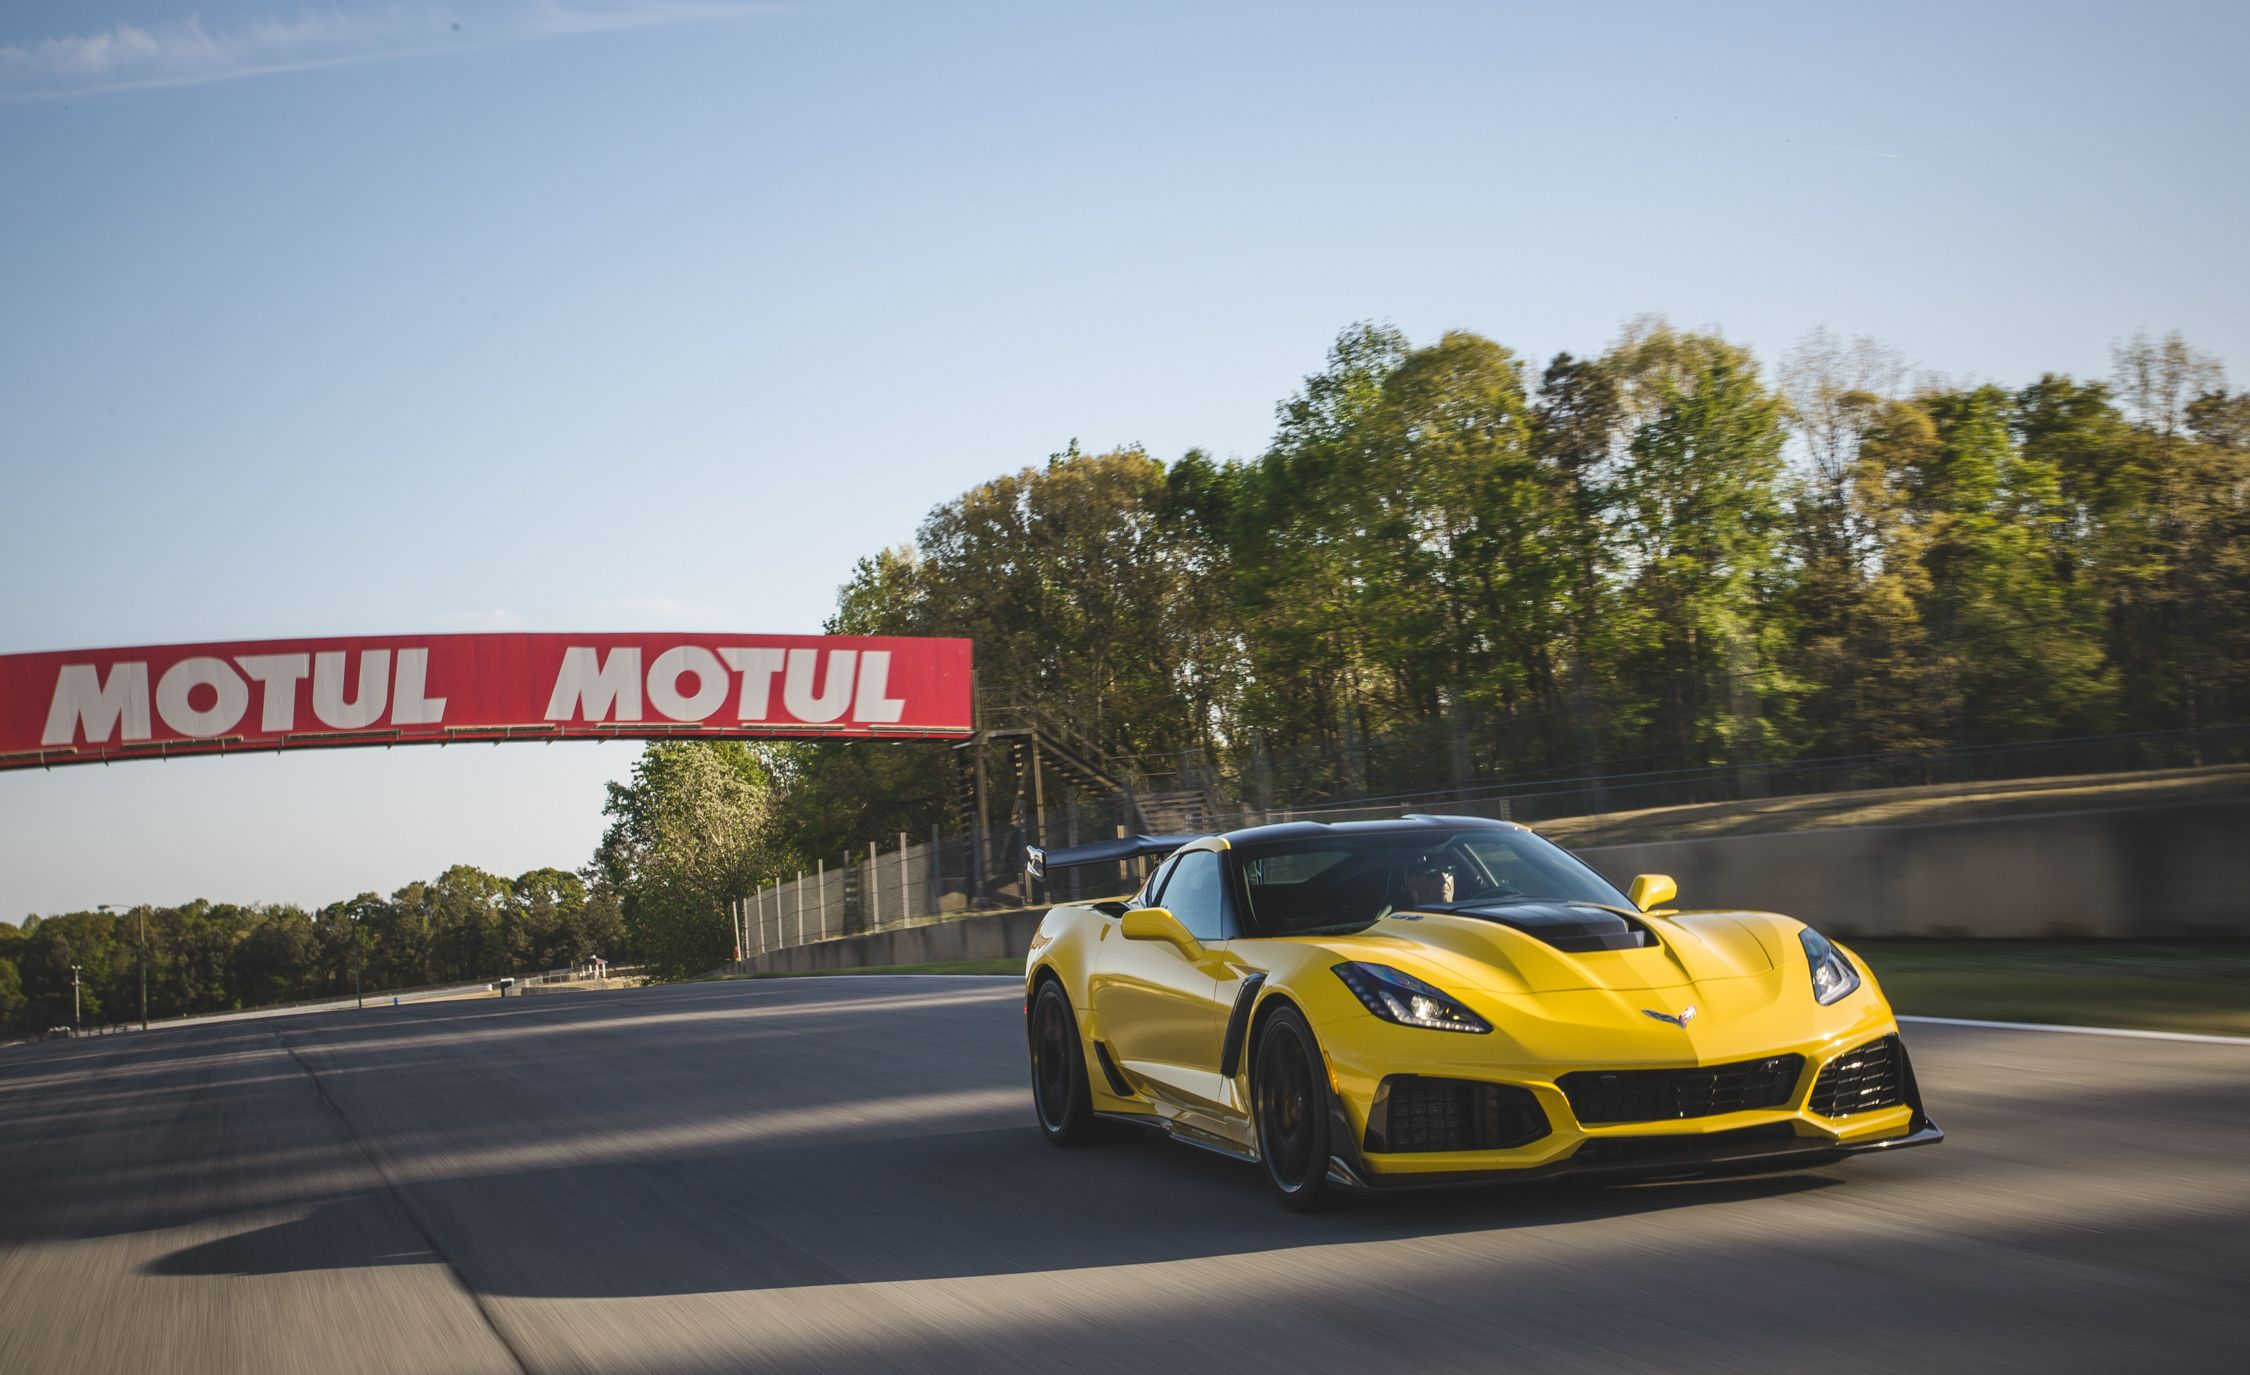 The Chevrolet Corvette Zr1 Hits 212 Mph